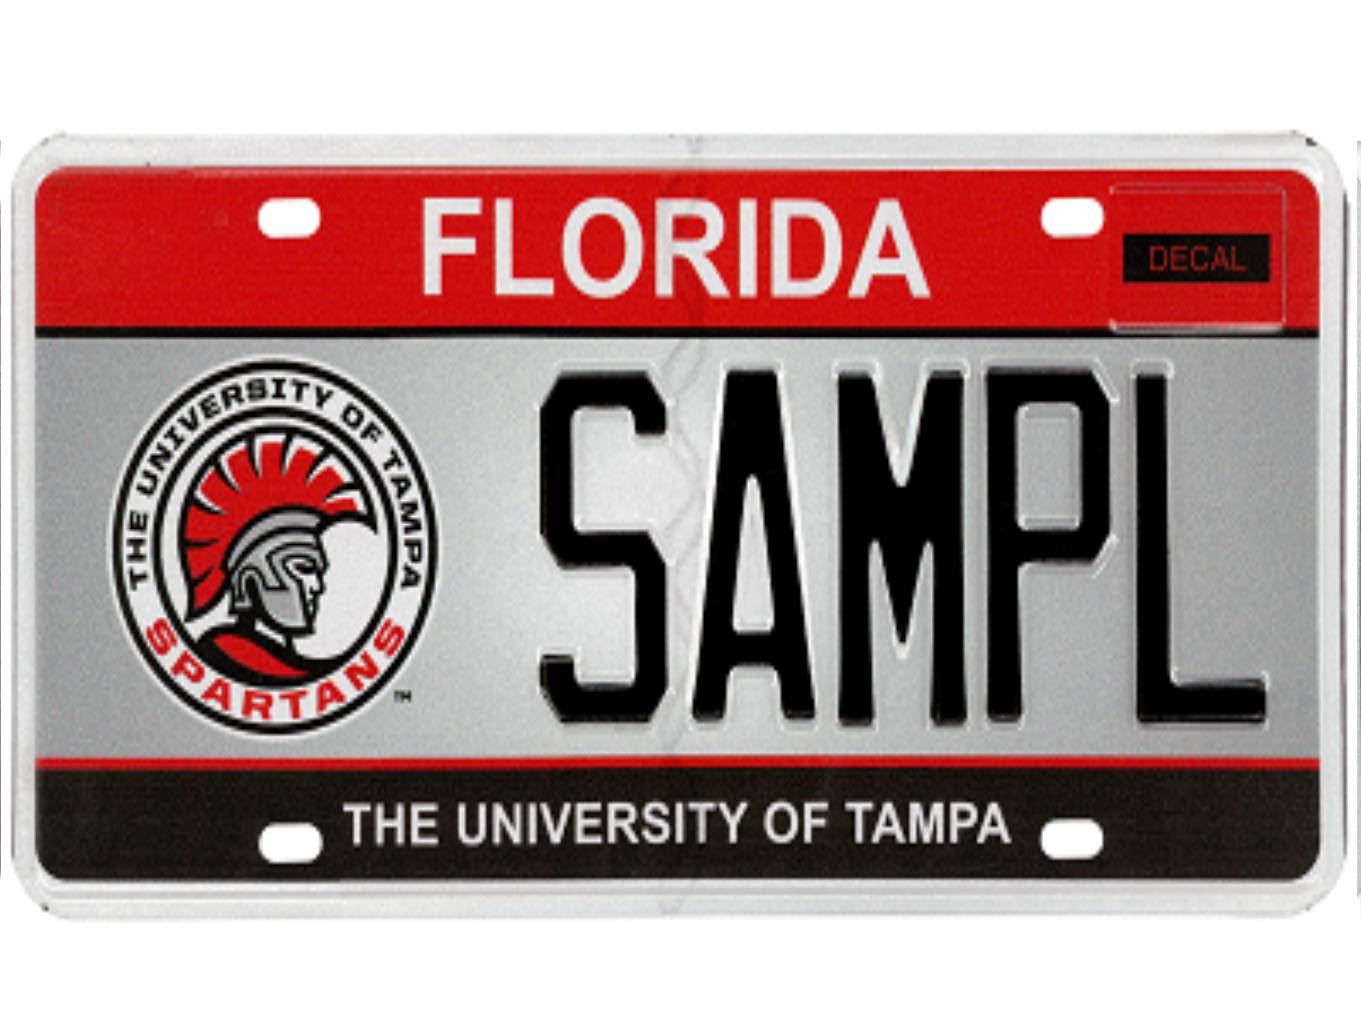 The University of Tampa license plate.